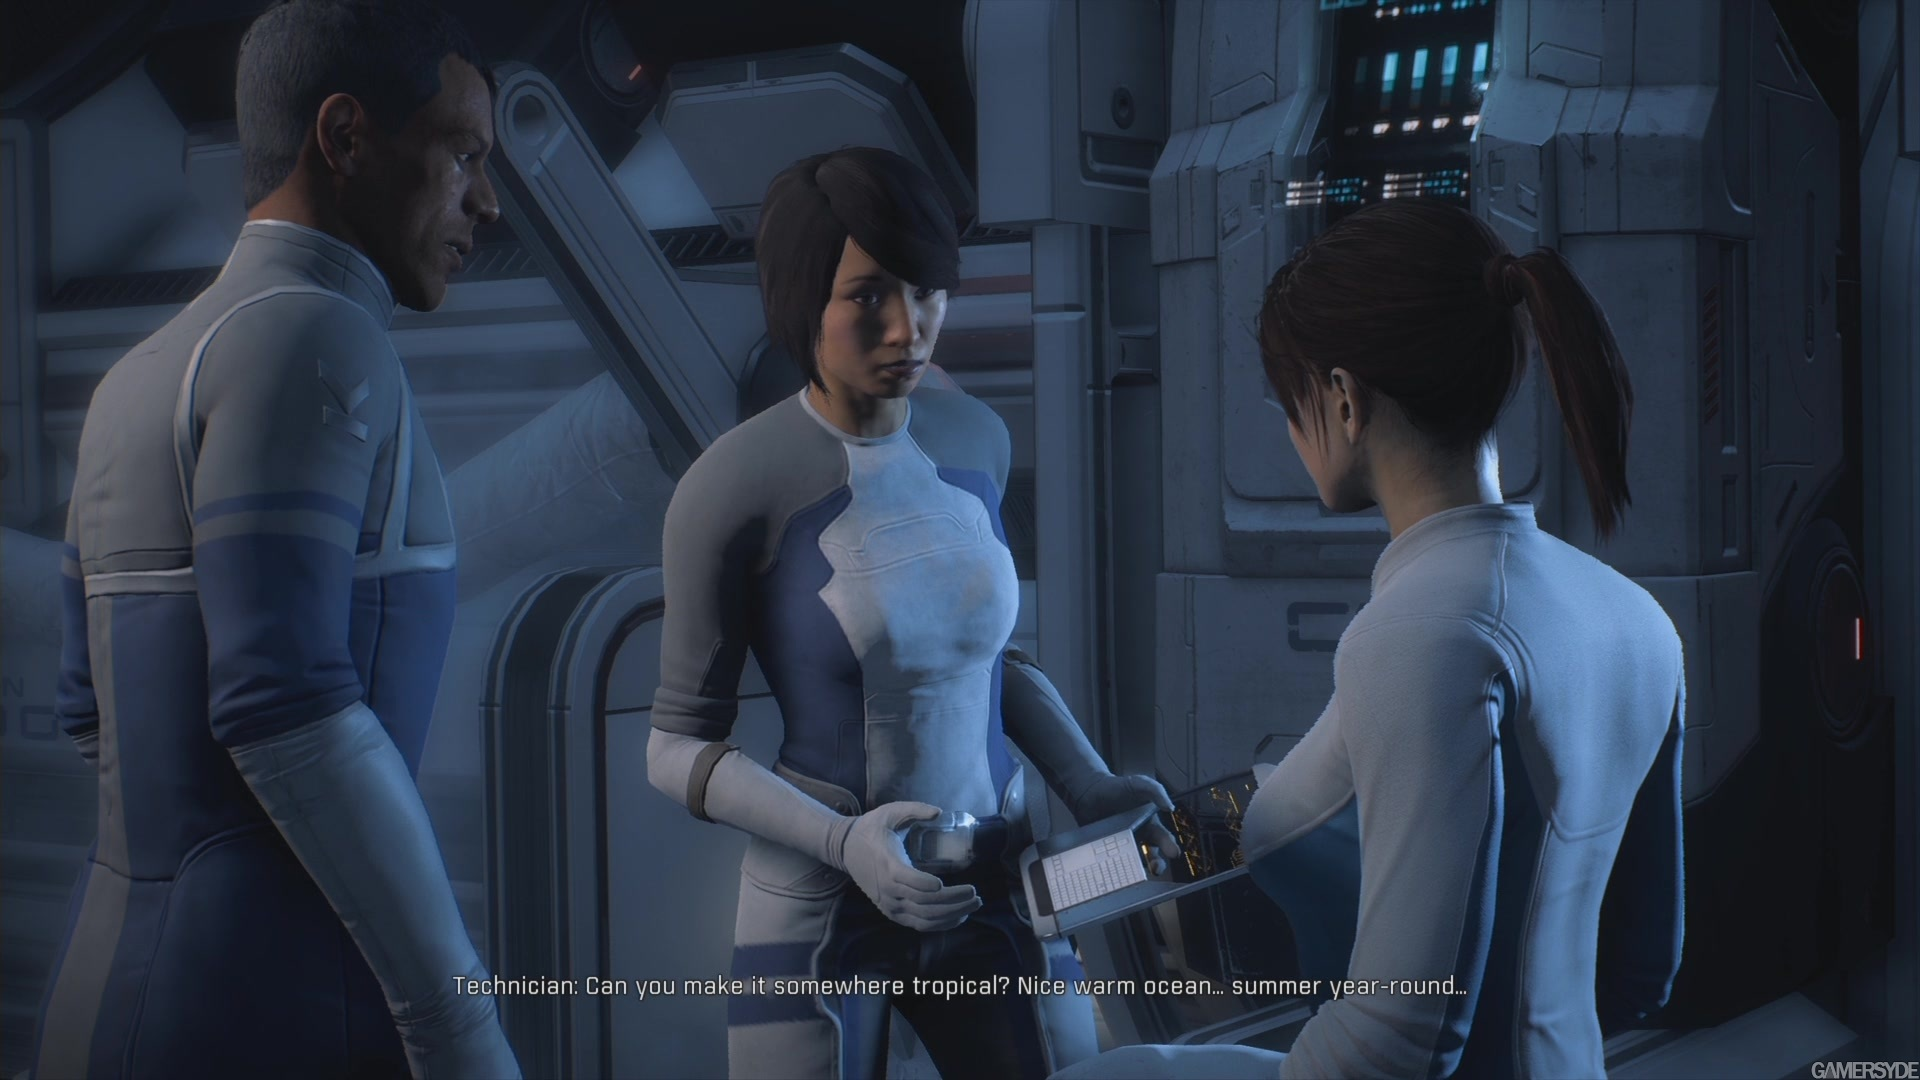 Mass effect anime porno adult picture